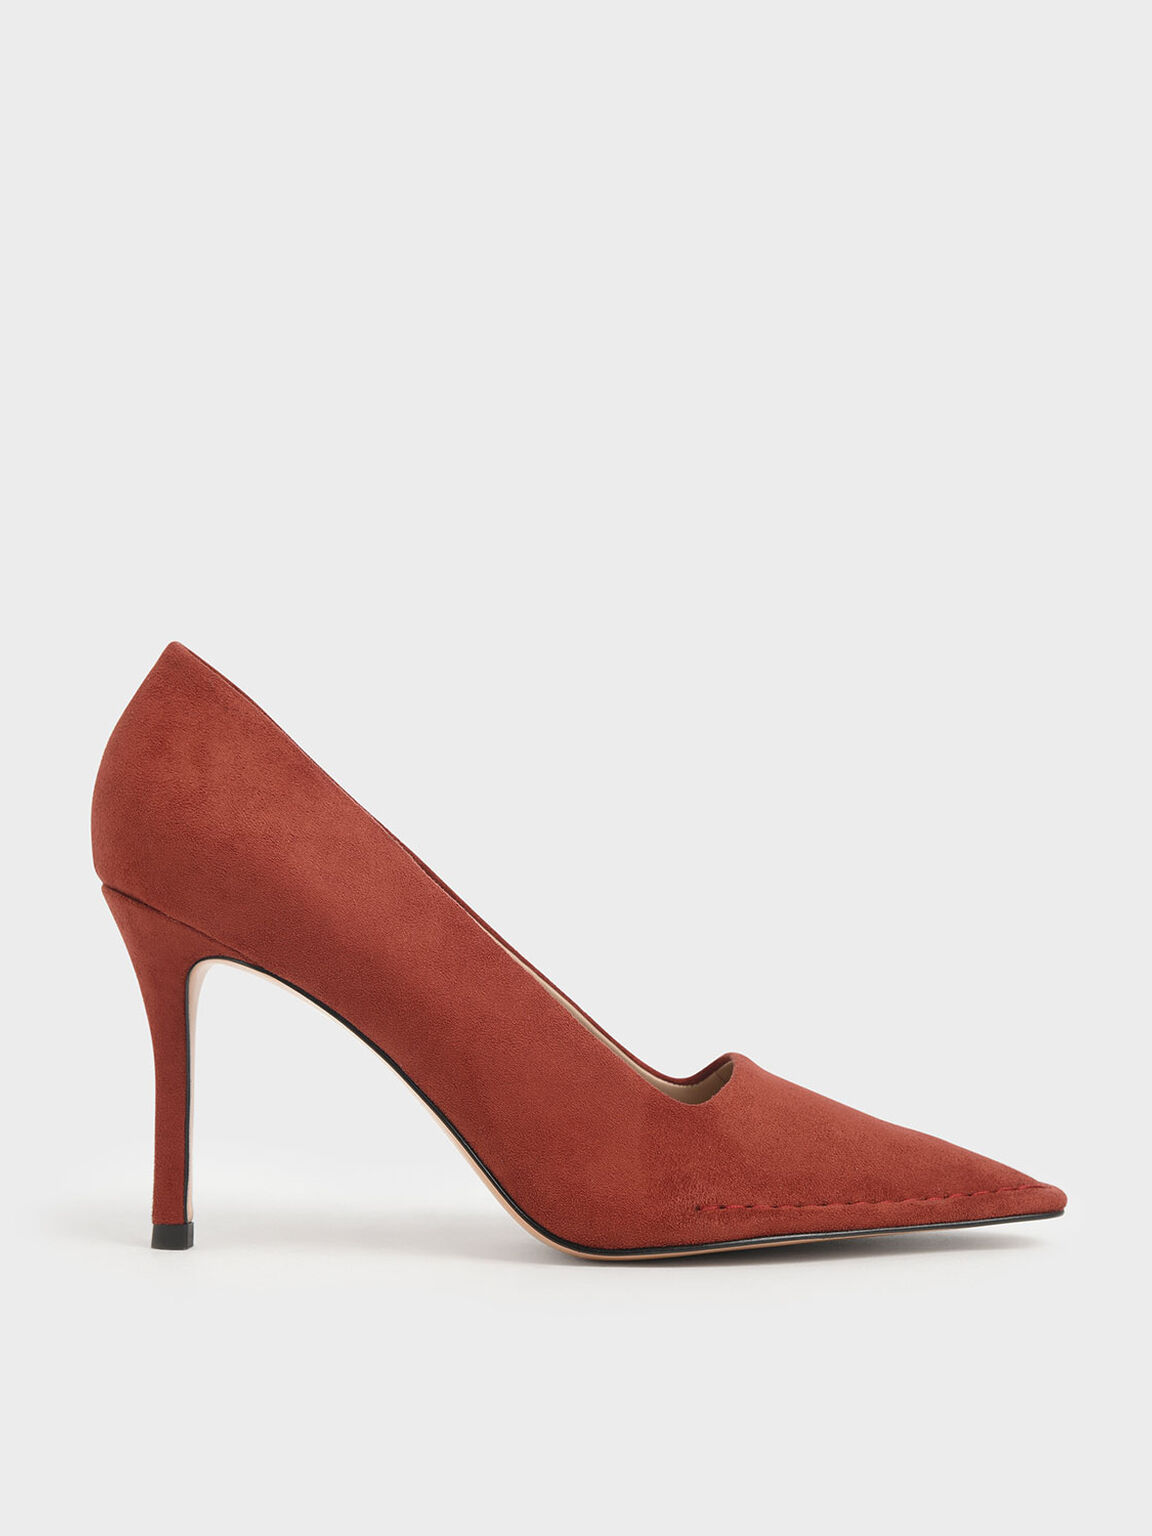 Stitch Trim Textured Stiletto Pumps, Red, hi-res